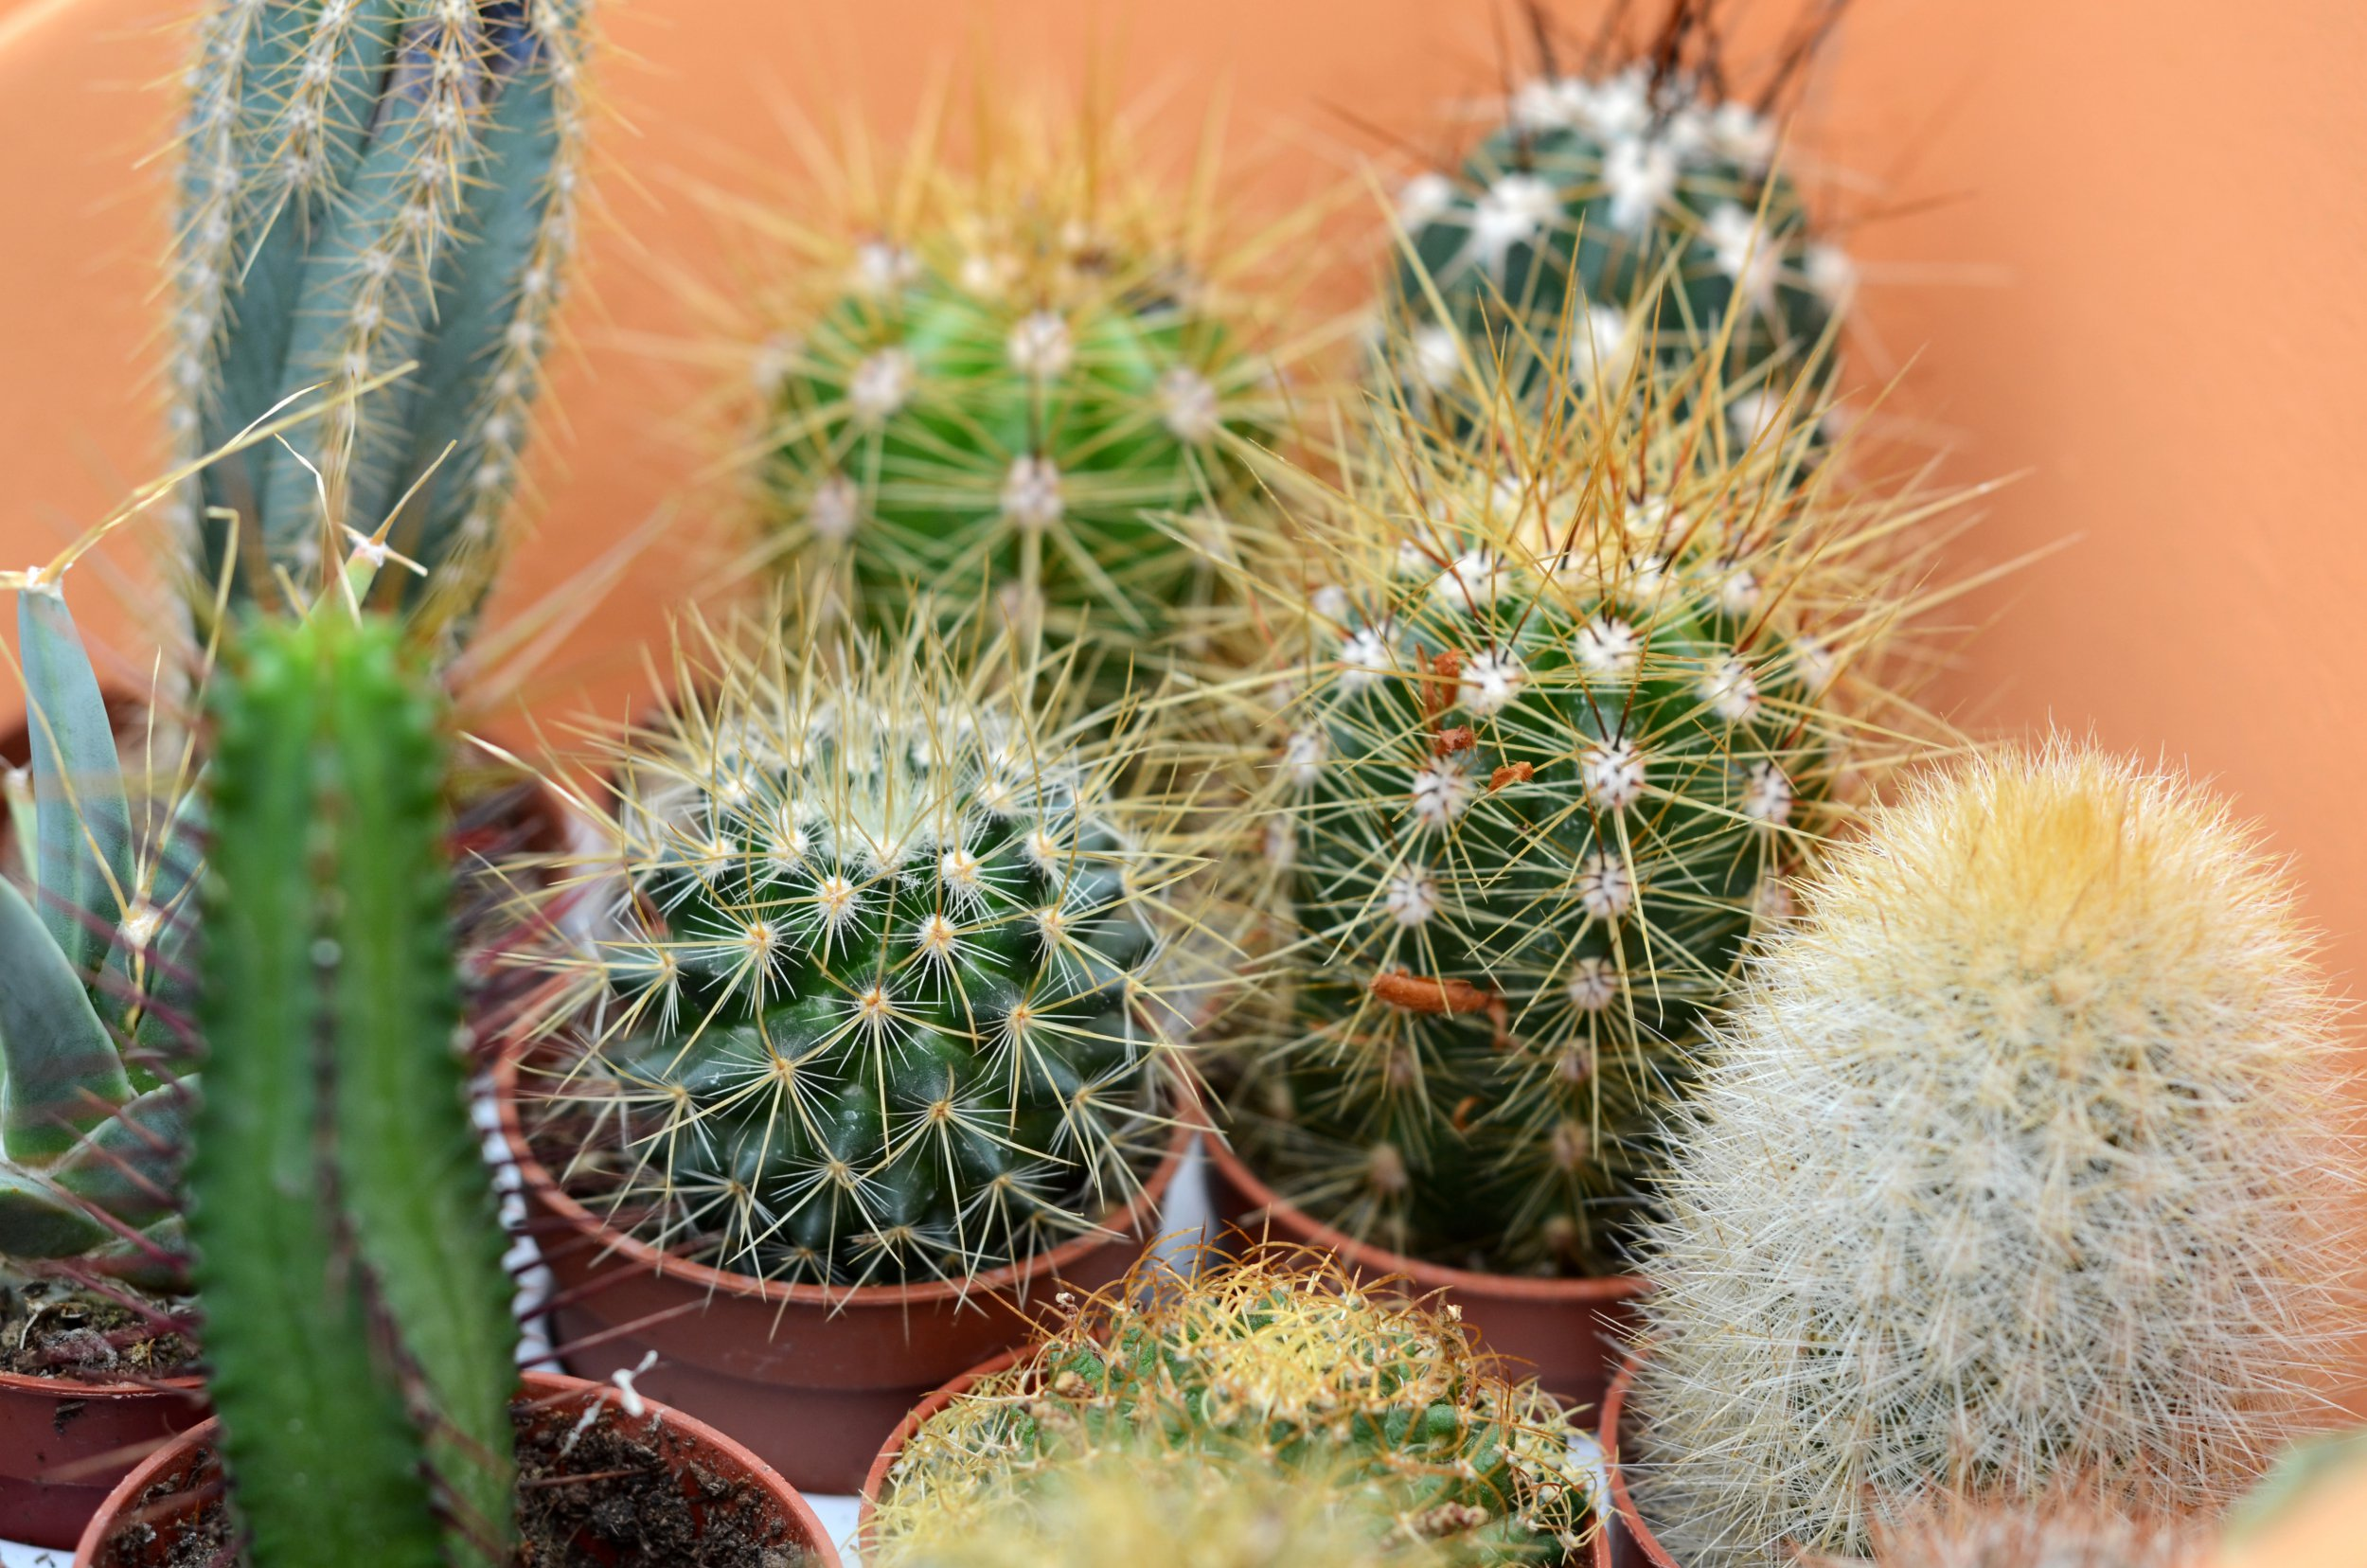 Man is tricked into thinking a potted pickle was a cactus, believing it for weeks